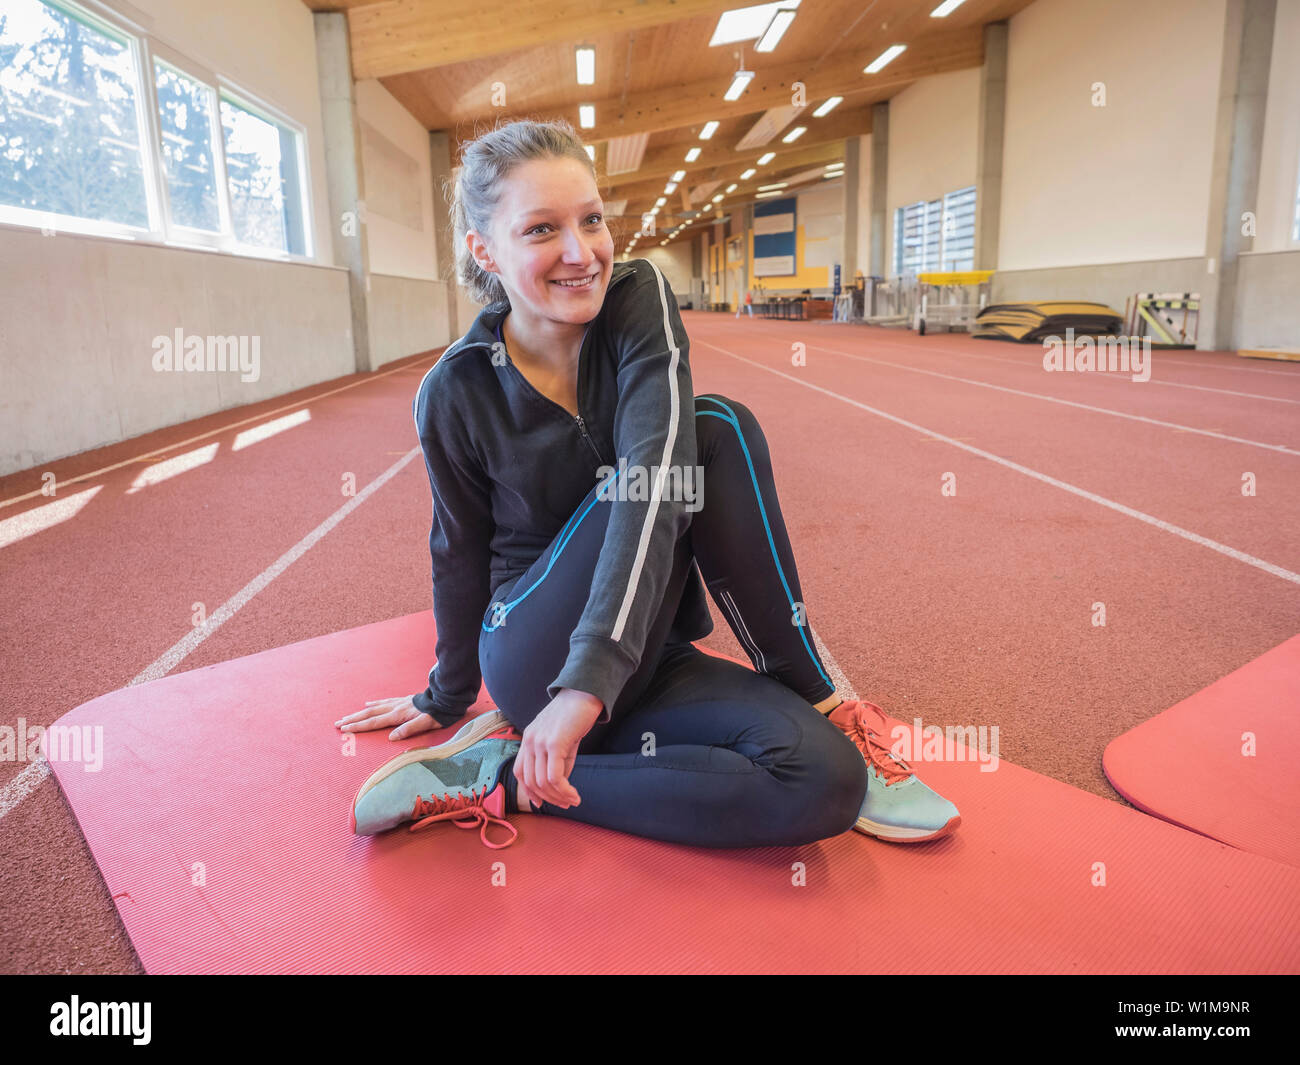 Young woman doing floor exercise in athletics hall on tartan track, Offenburg, Baden-Württemberg, Germany Stock Photo